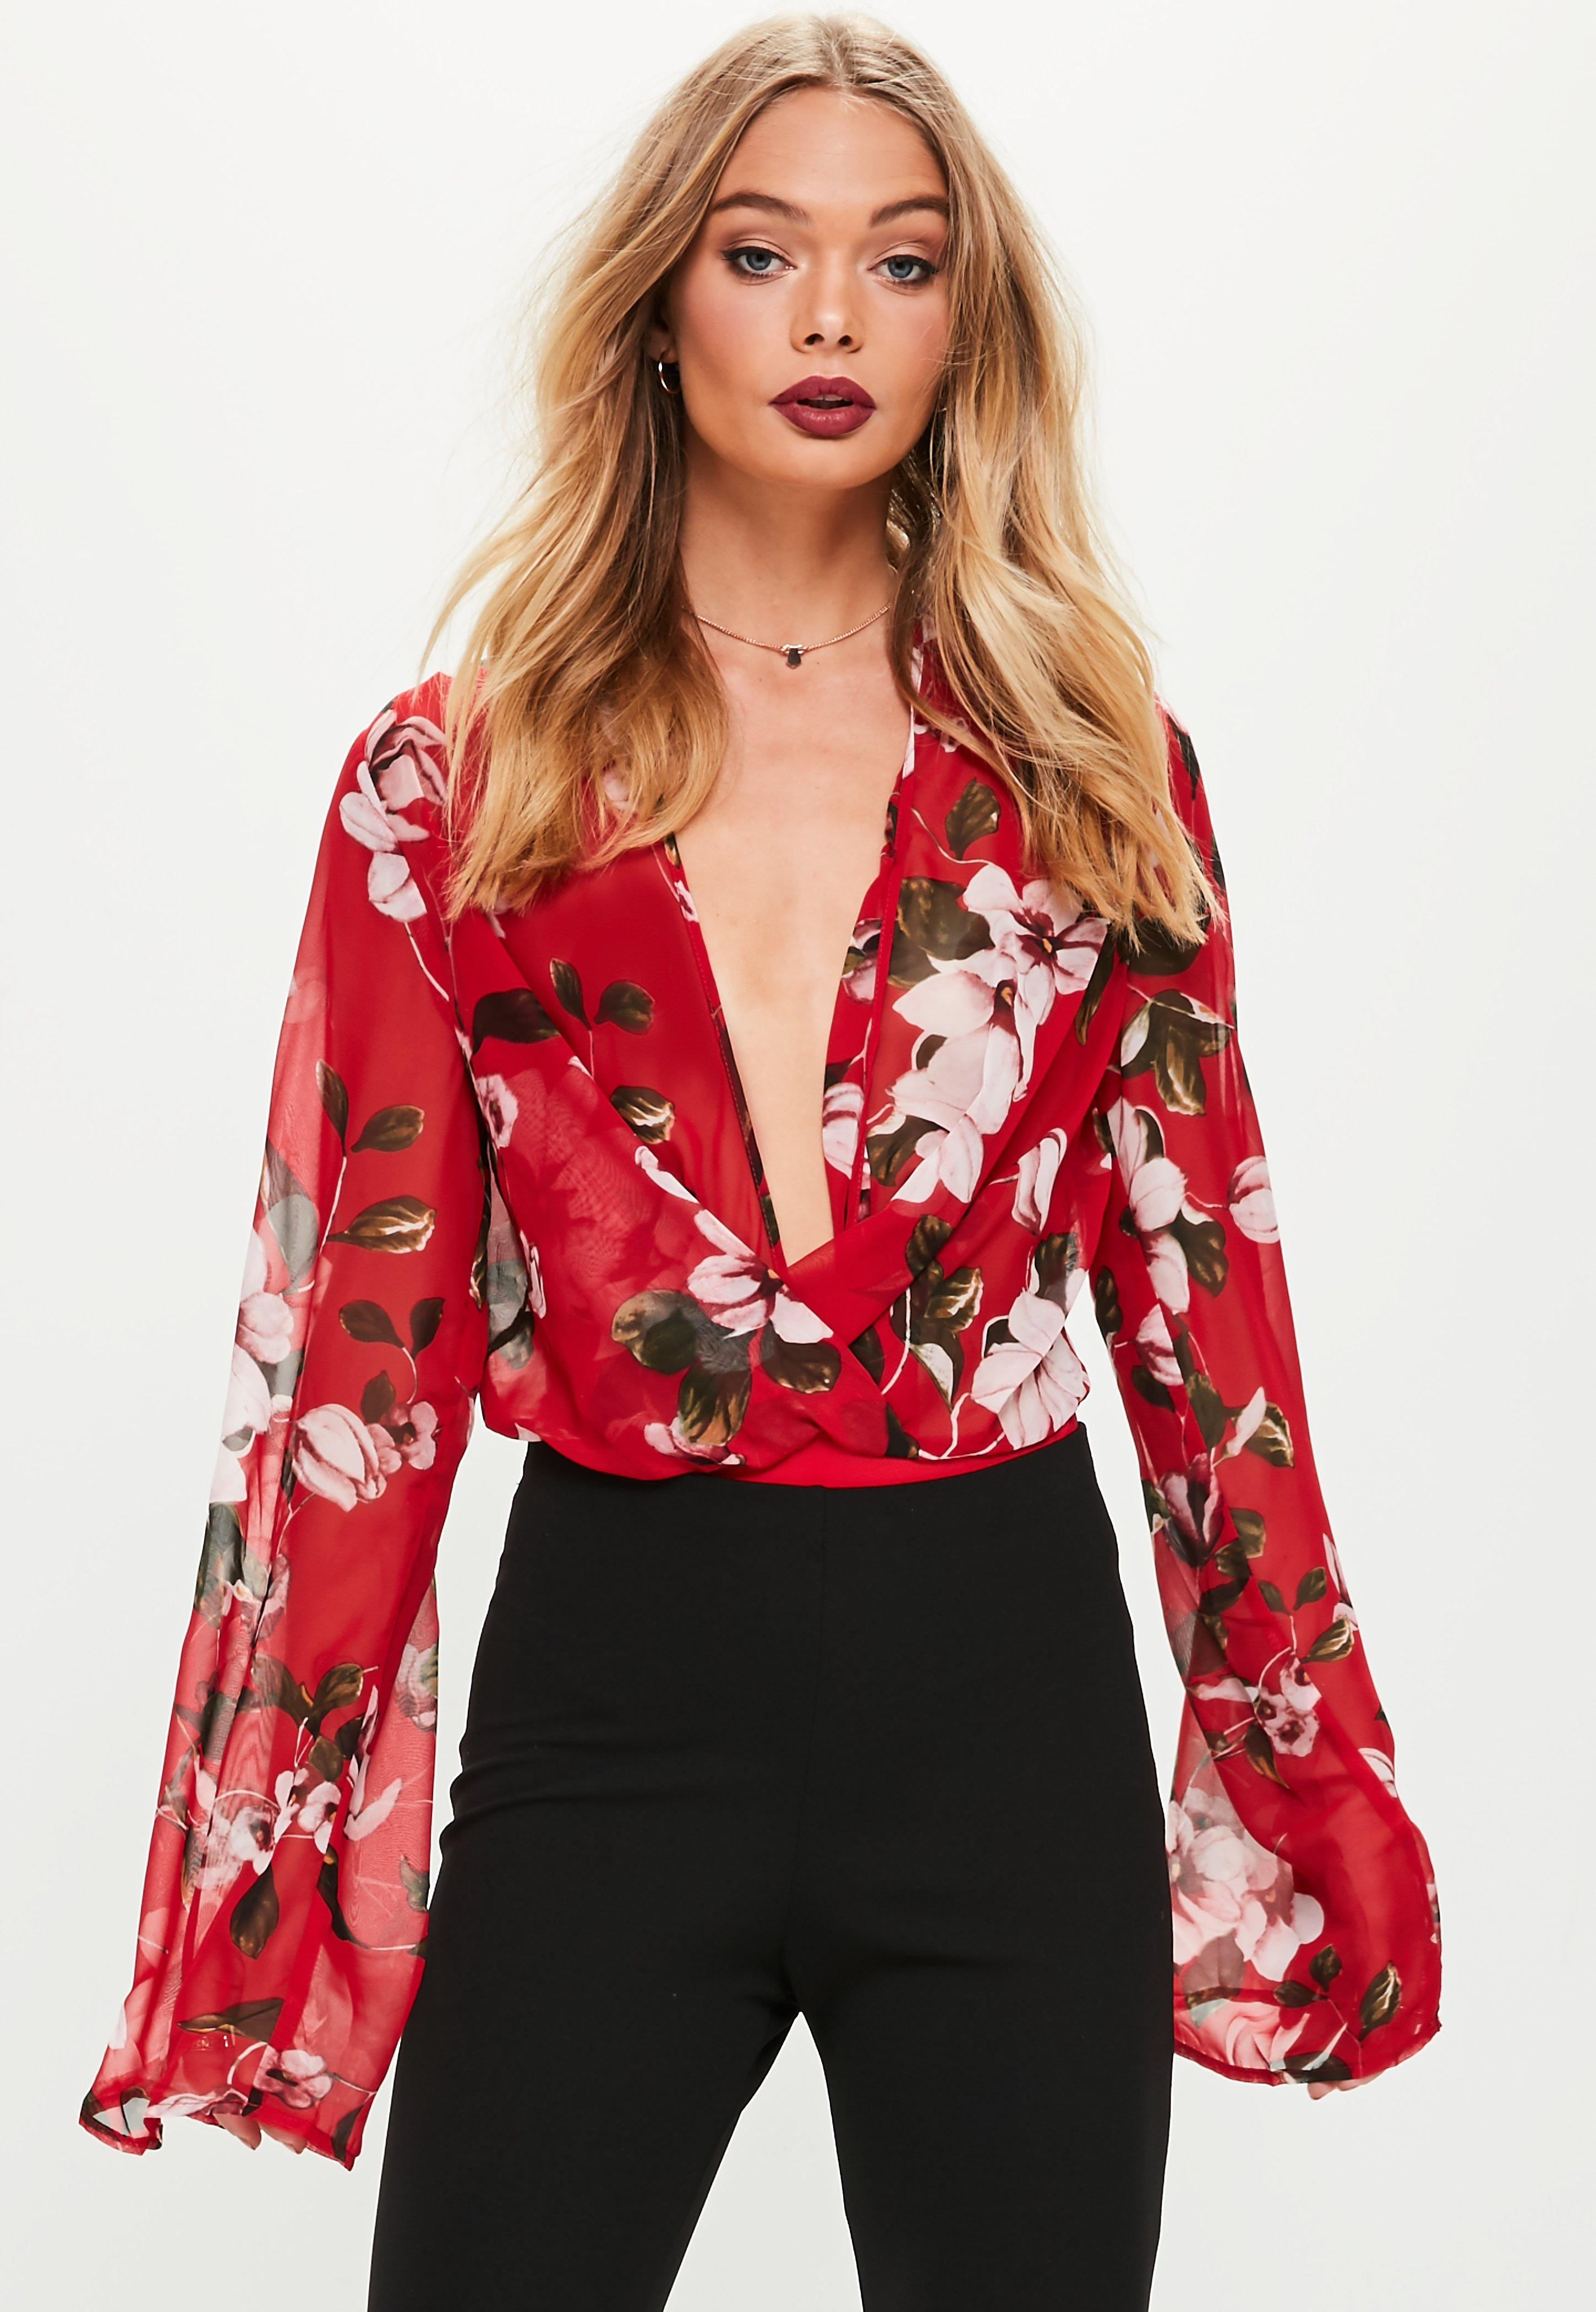 Outlet Footlocker Missguided Floral Print Plunge Bodysuit Low Price Fee Shipping Sale Online Visit New Sale Online From China Online Many Colors 3O9TrN56